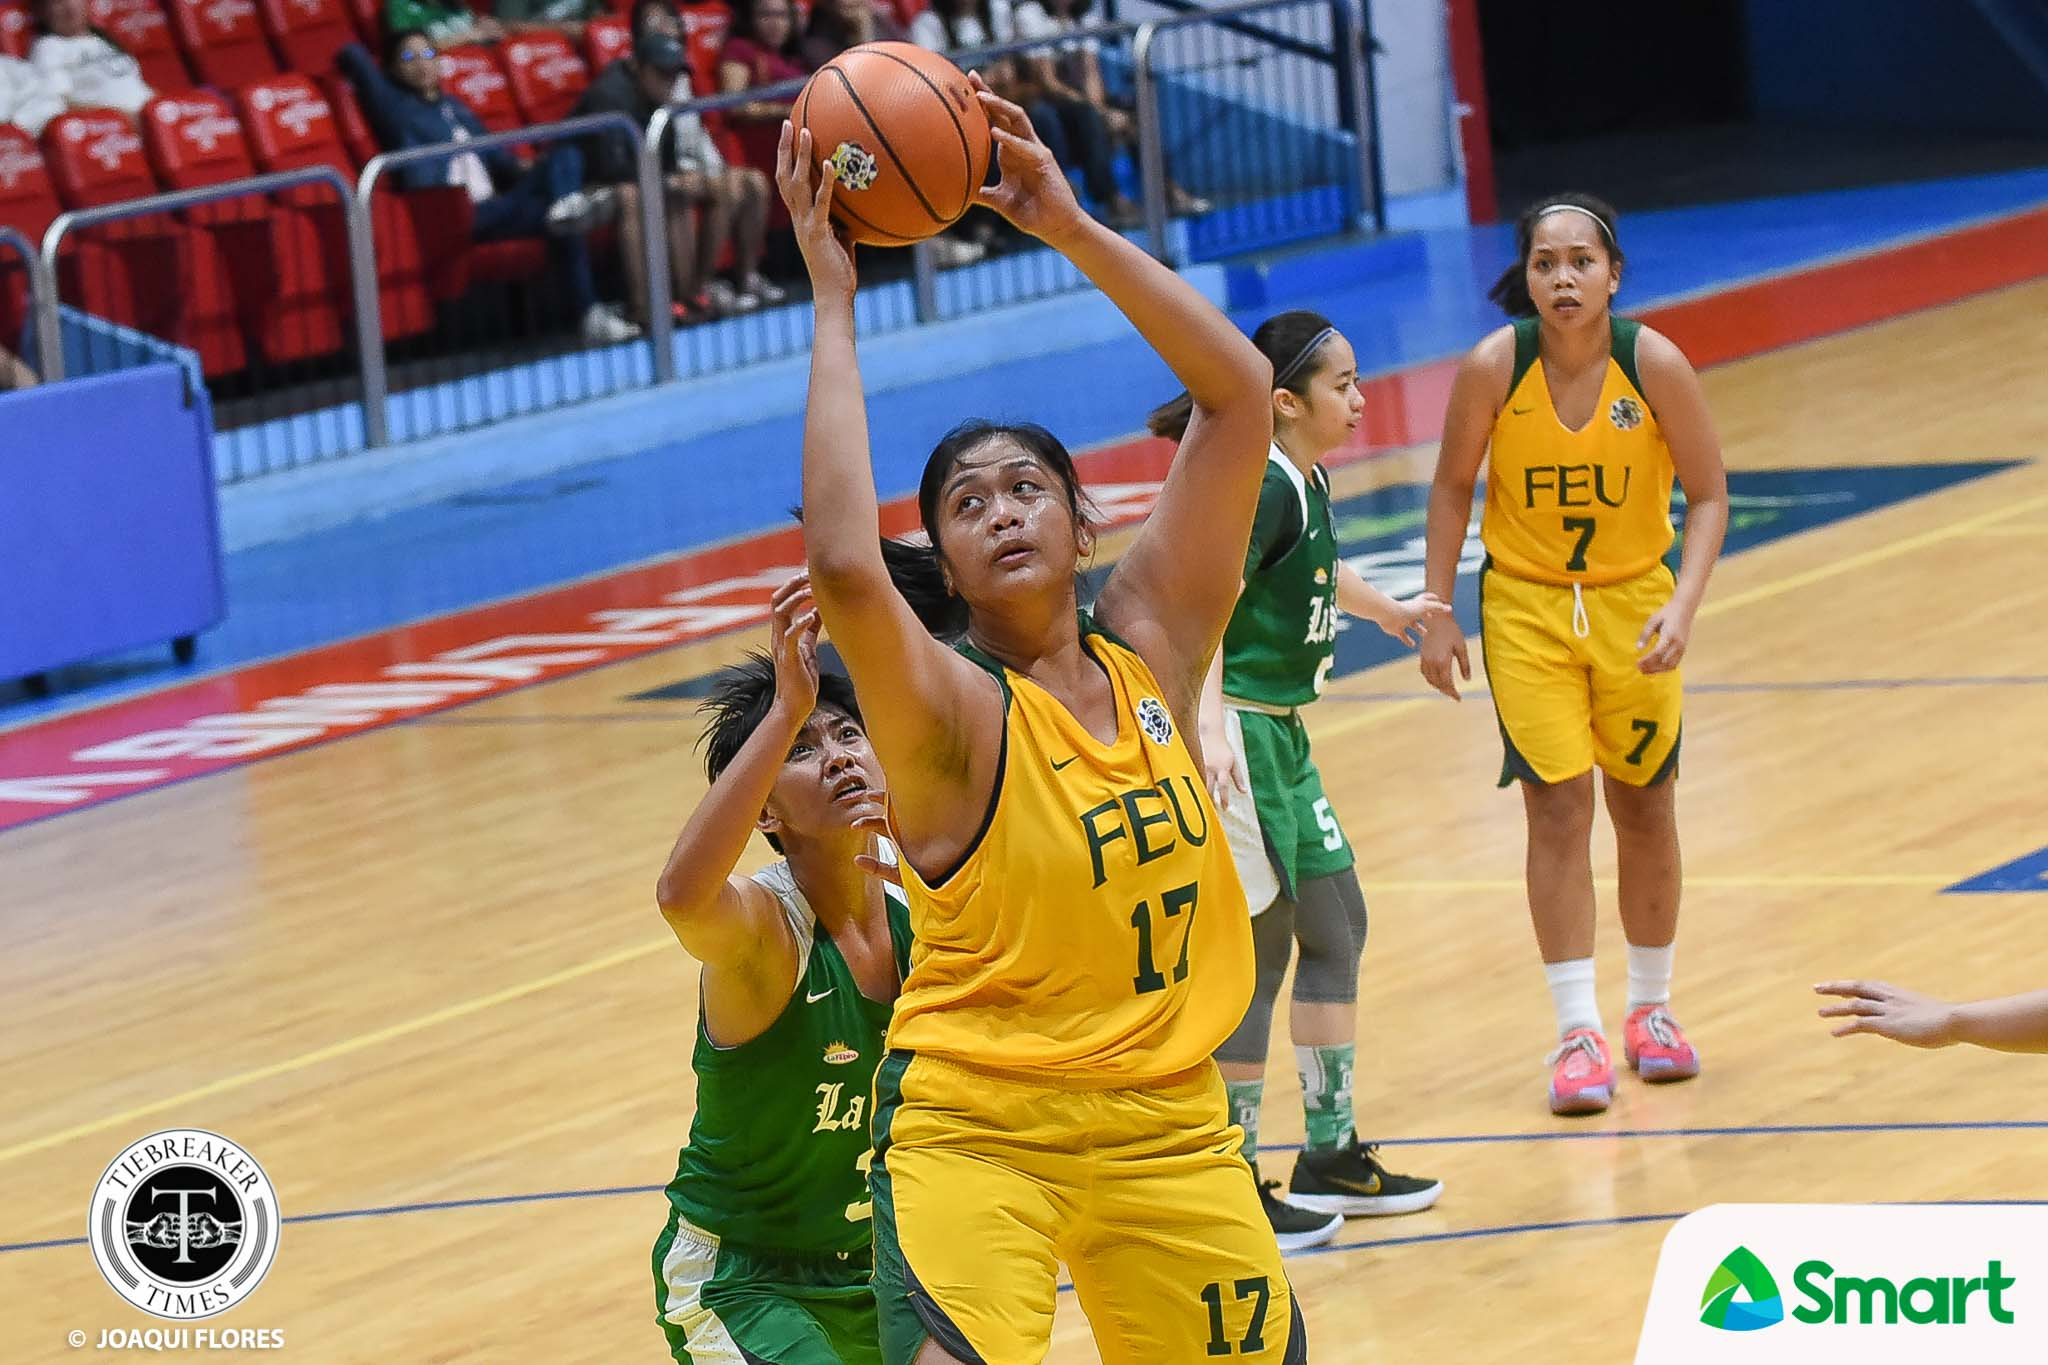 Tiebreaker Times Clare Castro falls shy of 40-20 game, lifts FEU over slumping La Salle Basketball FEU News UAAP UST  Valerie Mamaril UAAP Season 81 Women's Basketball UAAP Season 81 Khate Castillo Joehanna Arciga FEU Women's Basketball DLSU Women's Basketball Clare Castro Cholo Villanueva Bert Flores